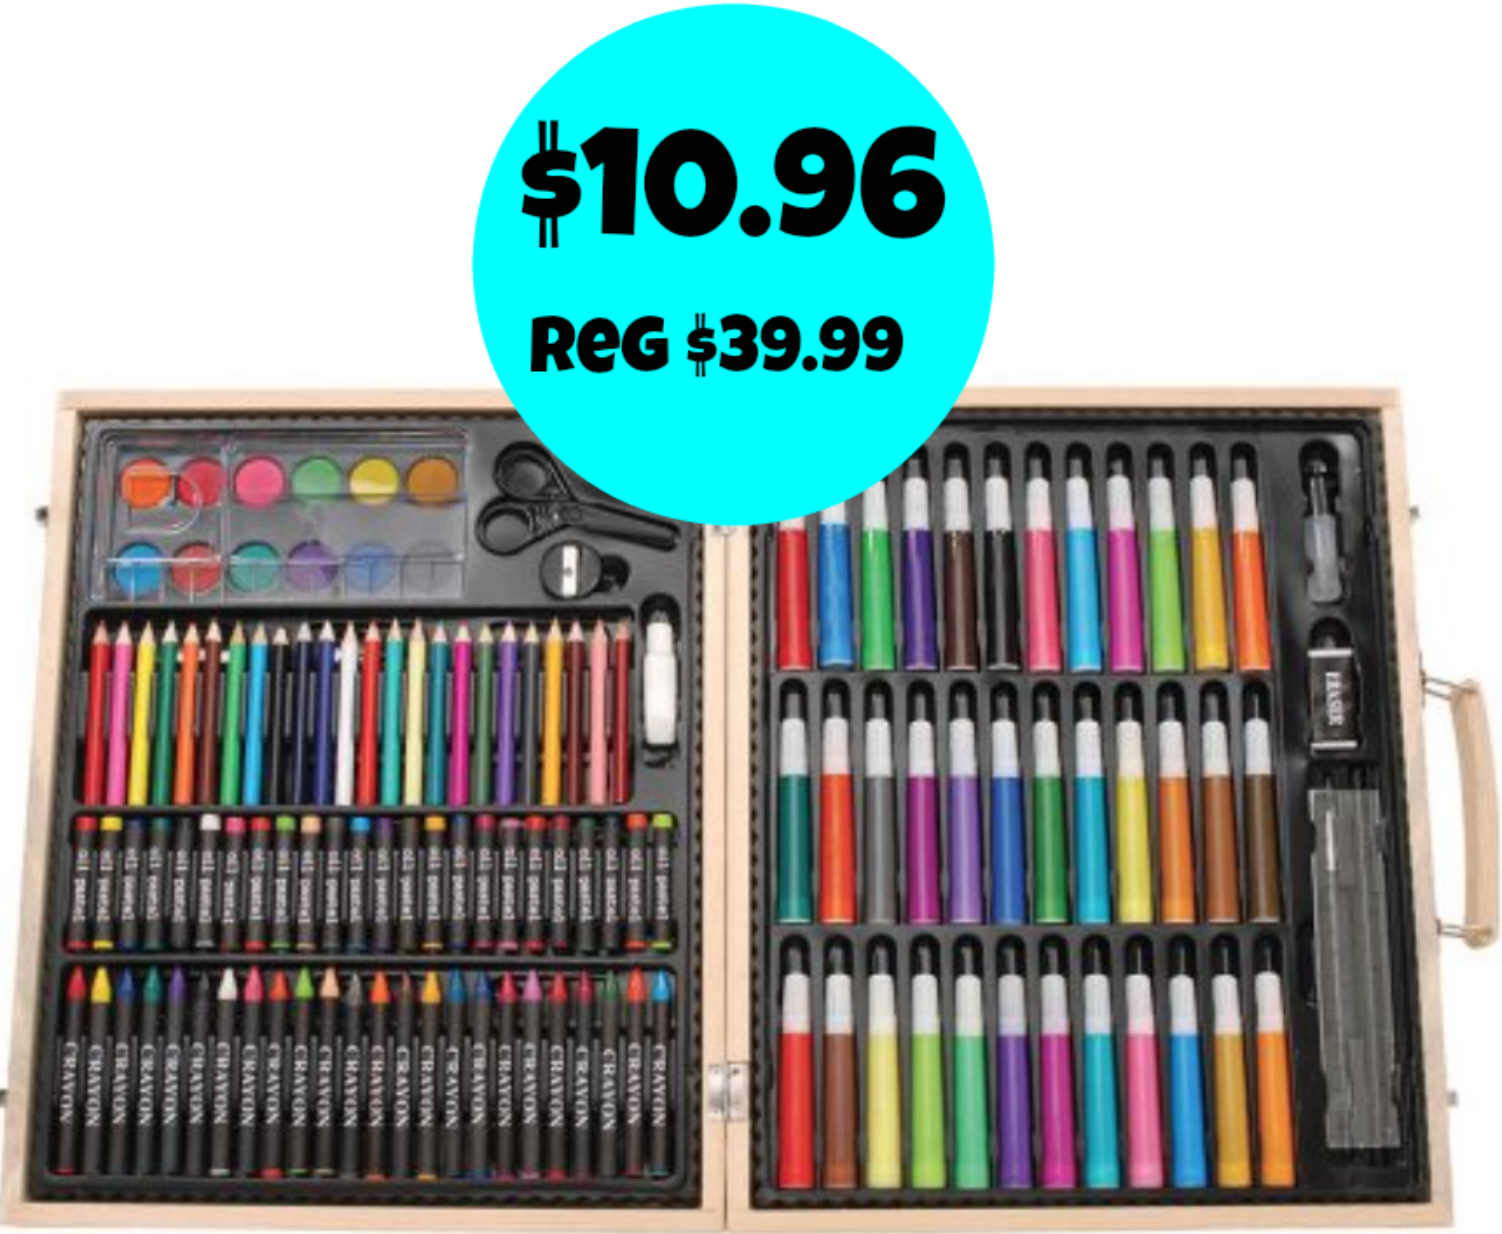 http://www.thebinderladies.com/2015/01/amazon-131-piece-deluxe-art-set-w-wood.html#.VMPFLofduyM